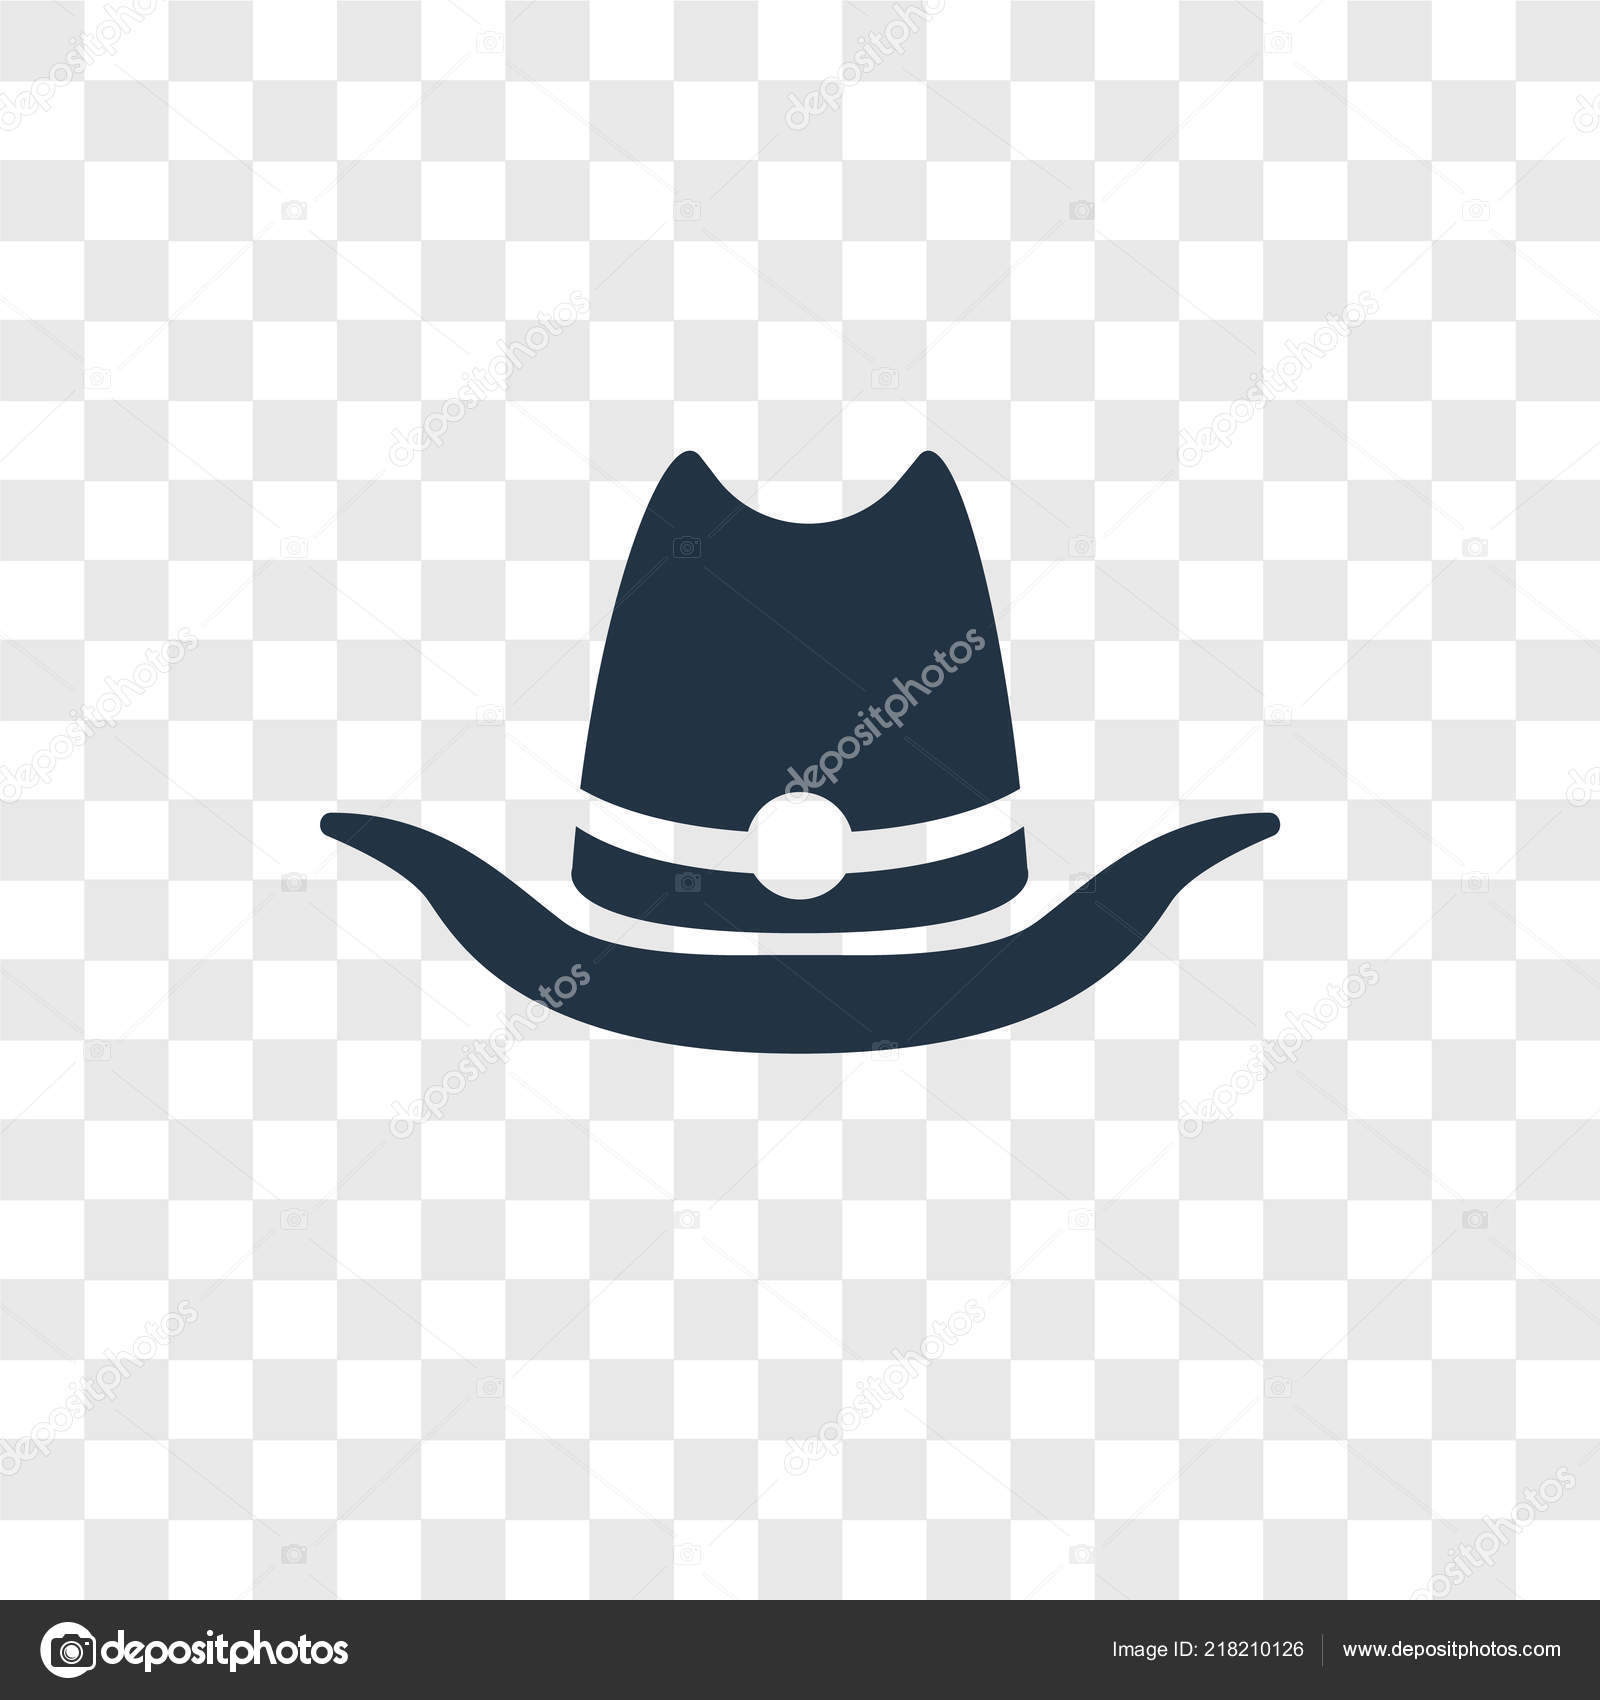 Cowboy hat icon trendy design style isolated stock jpg